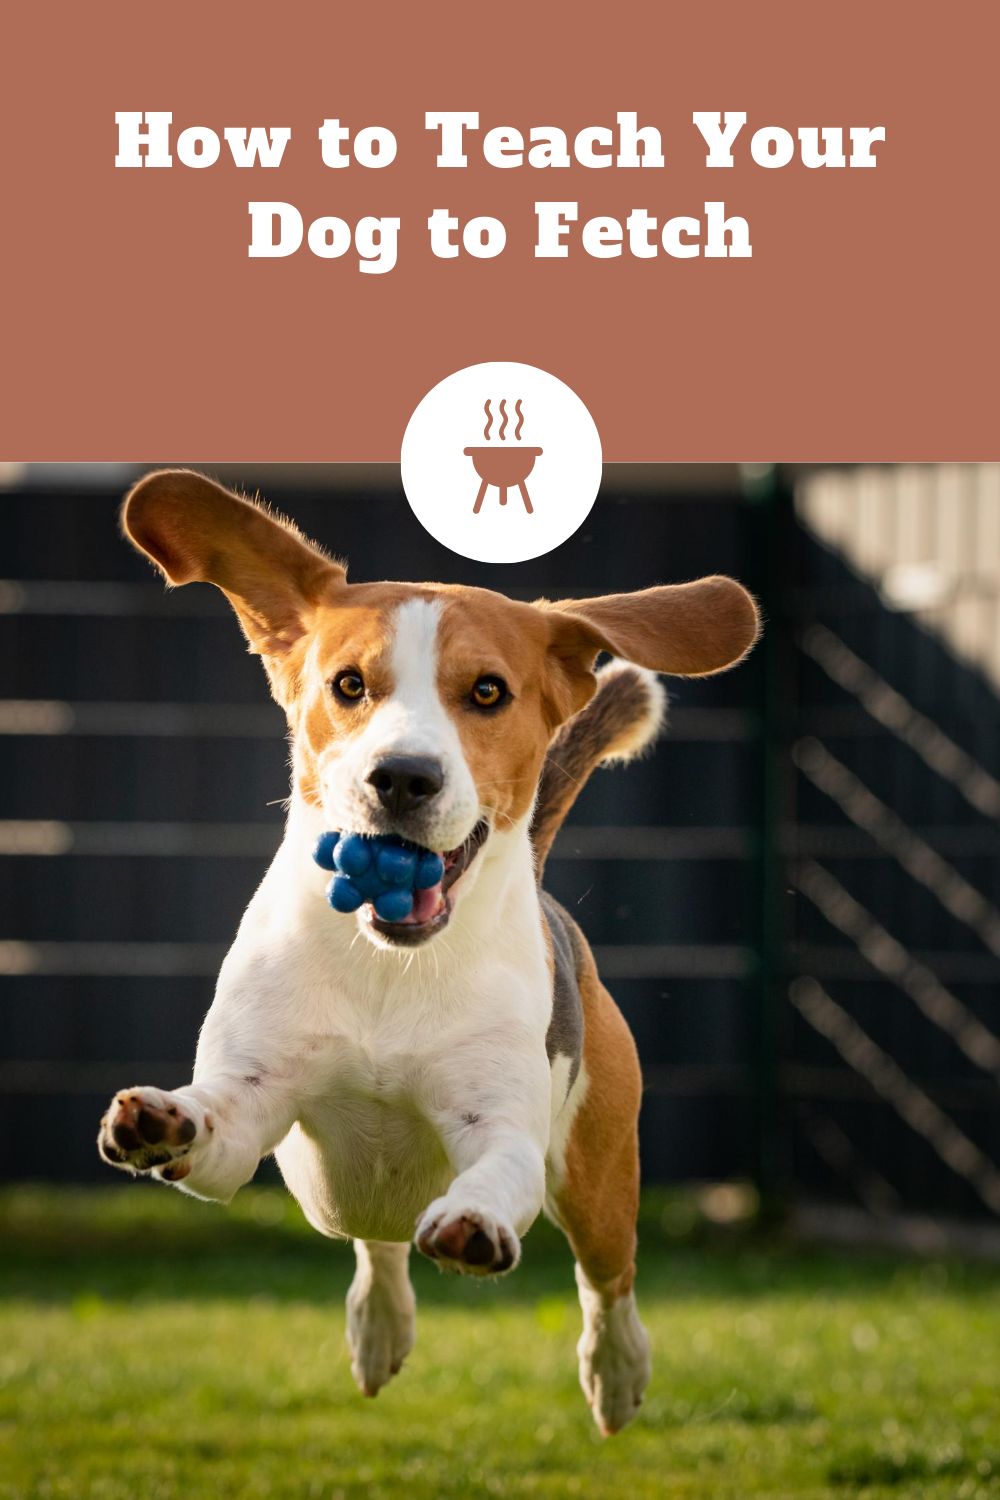 Easy Tips for Teaching your Dog a RELIABLE Fetch! #doglover #dogtraining #doglife #doglover #dogtrainingadvice